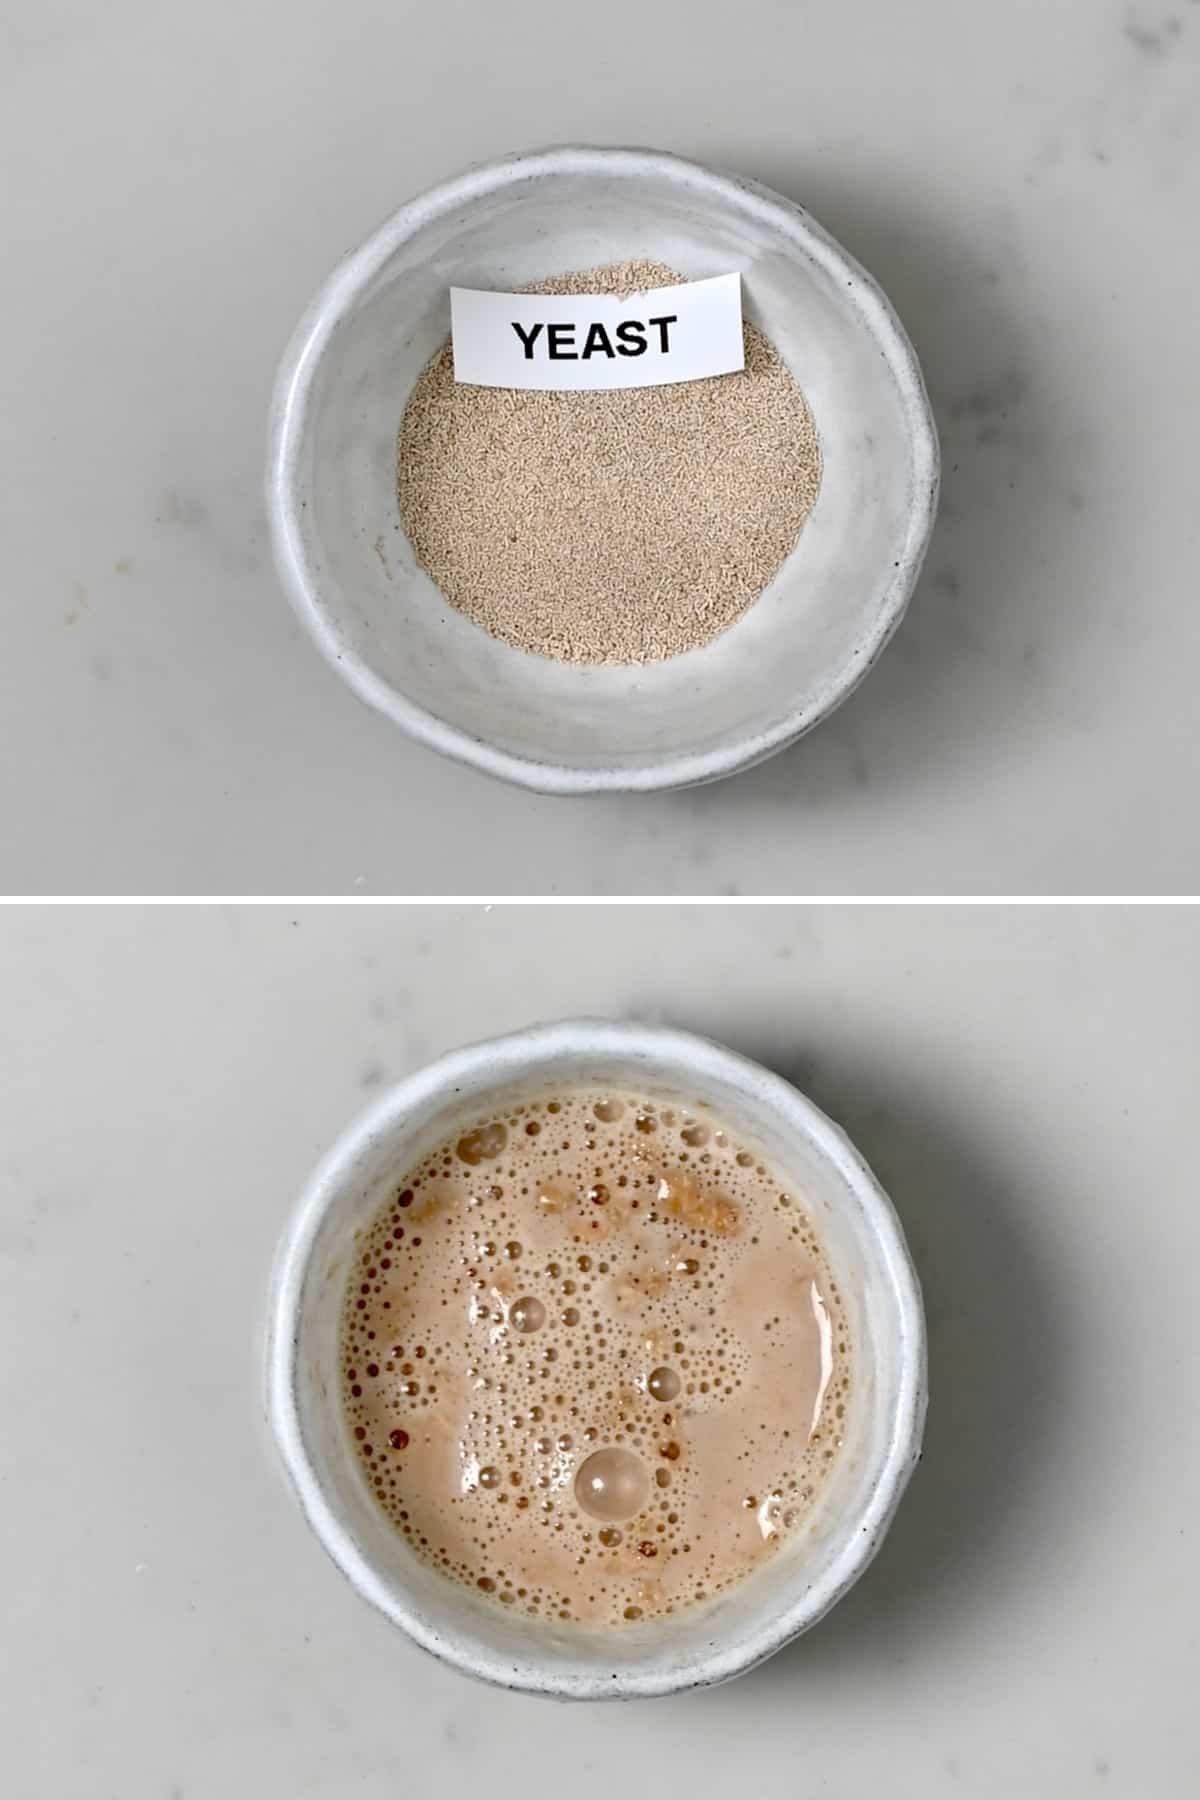 Yeast that is leavening